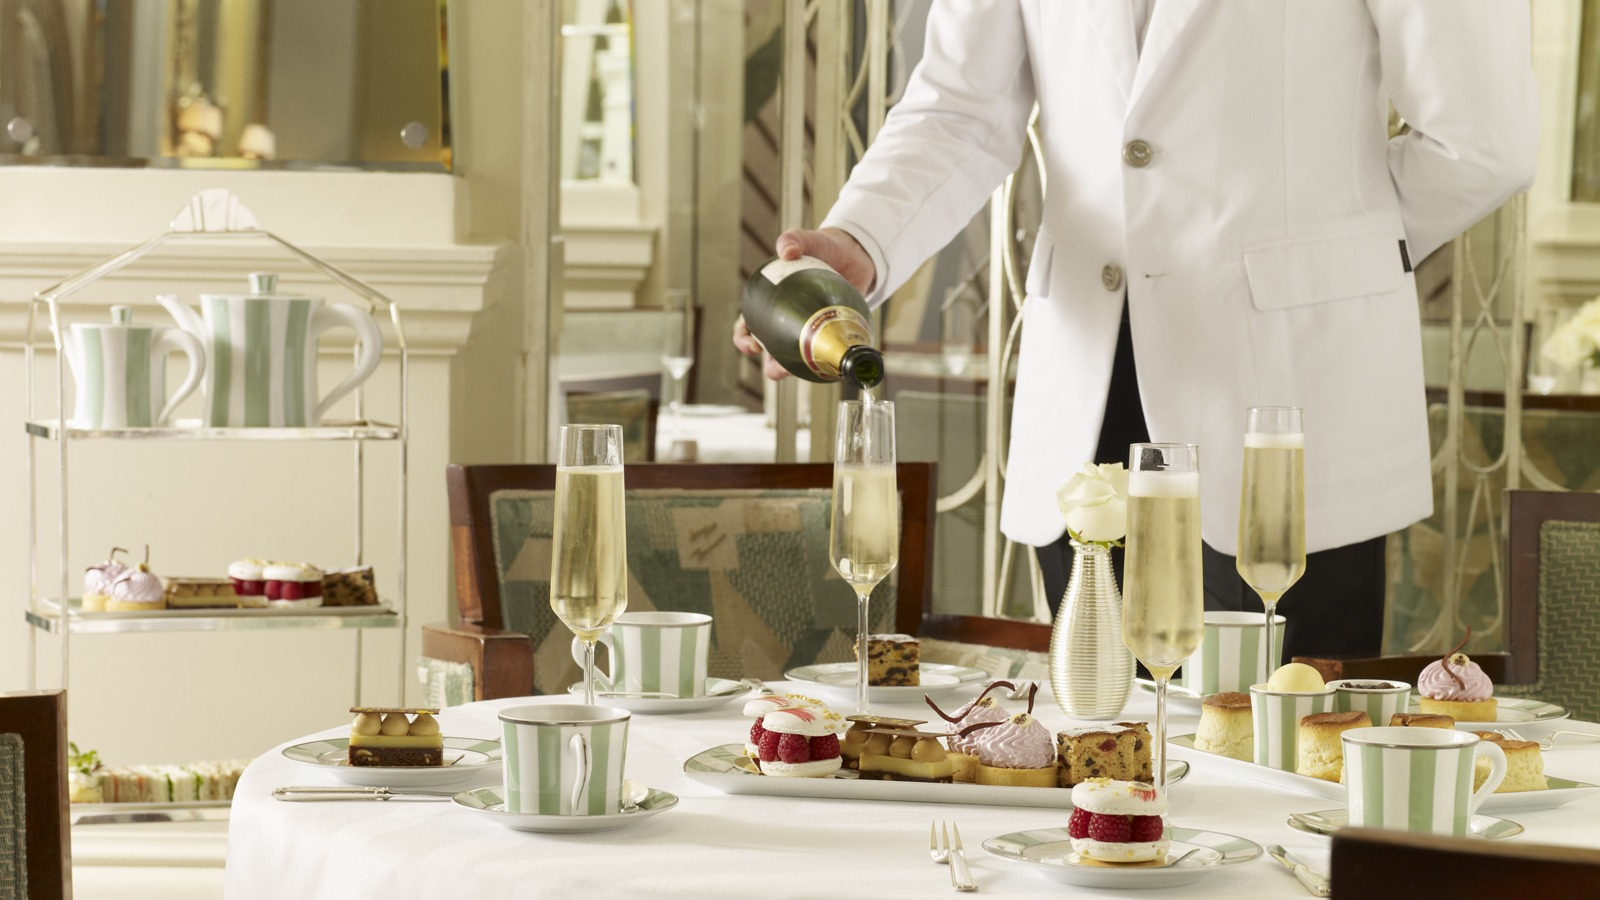 Afternoon tea in Claridges, London